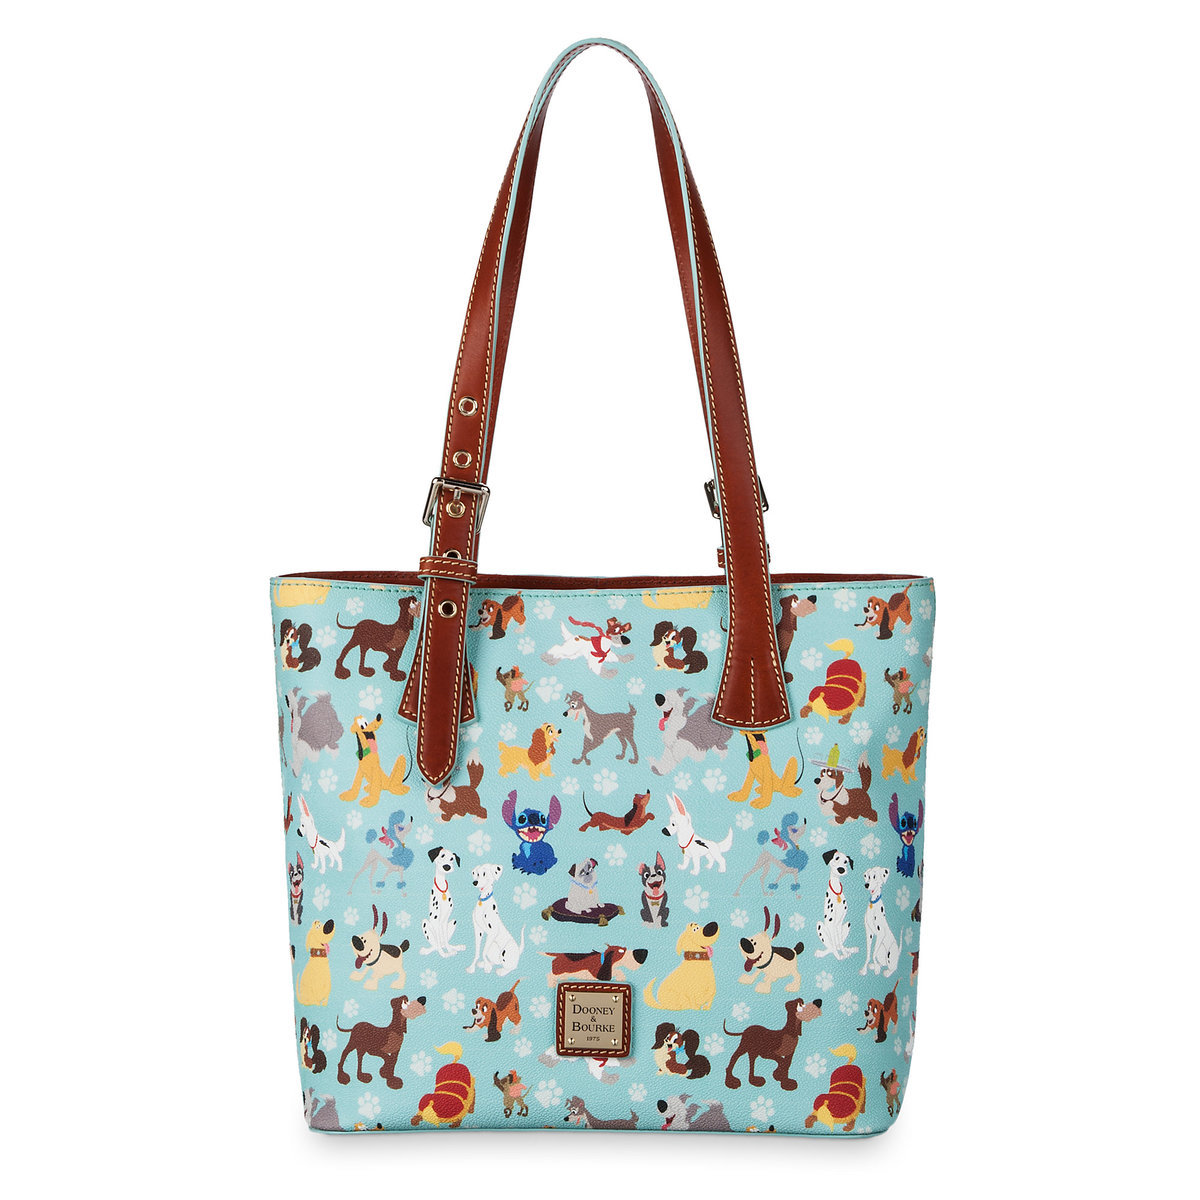 Disney Dooney Bourke Bag Dogs Emily Shoulder